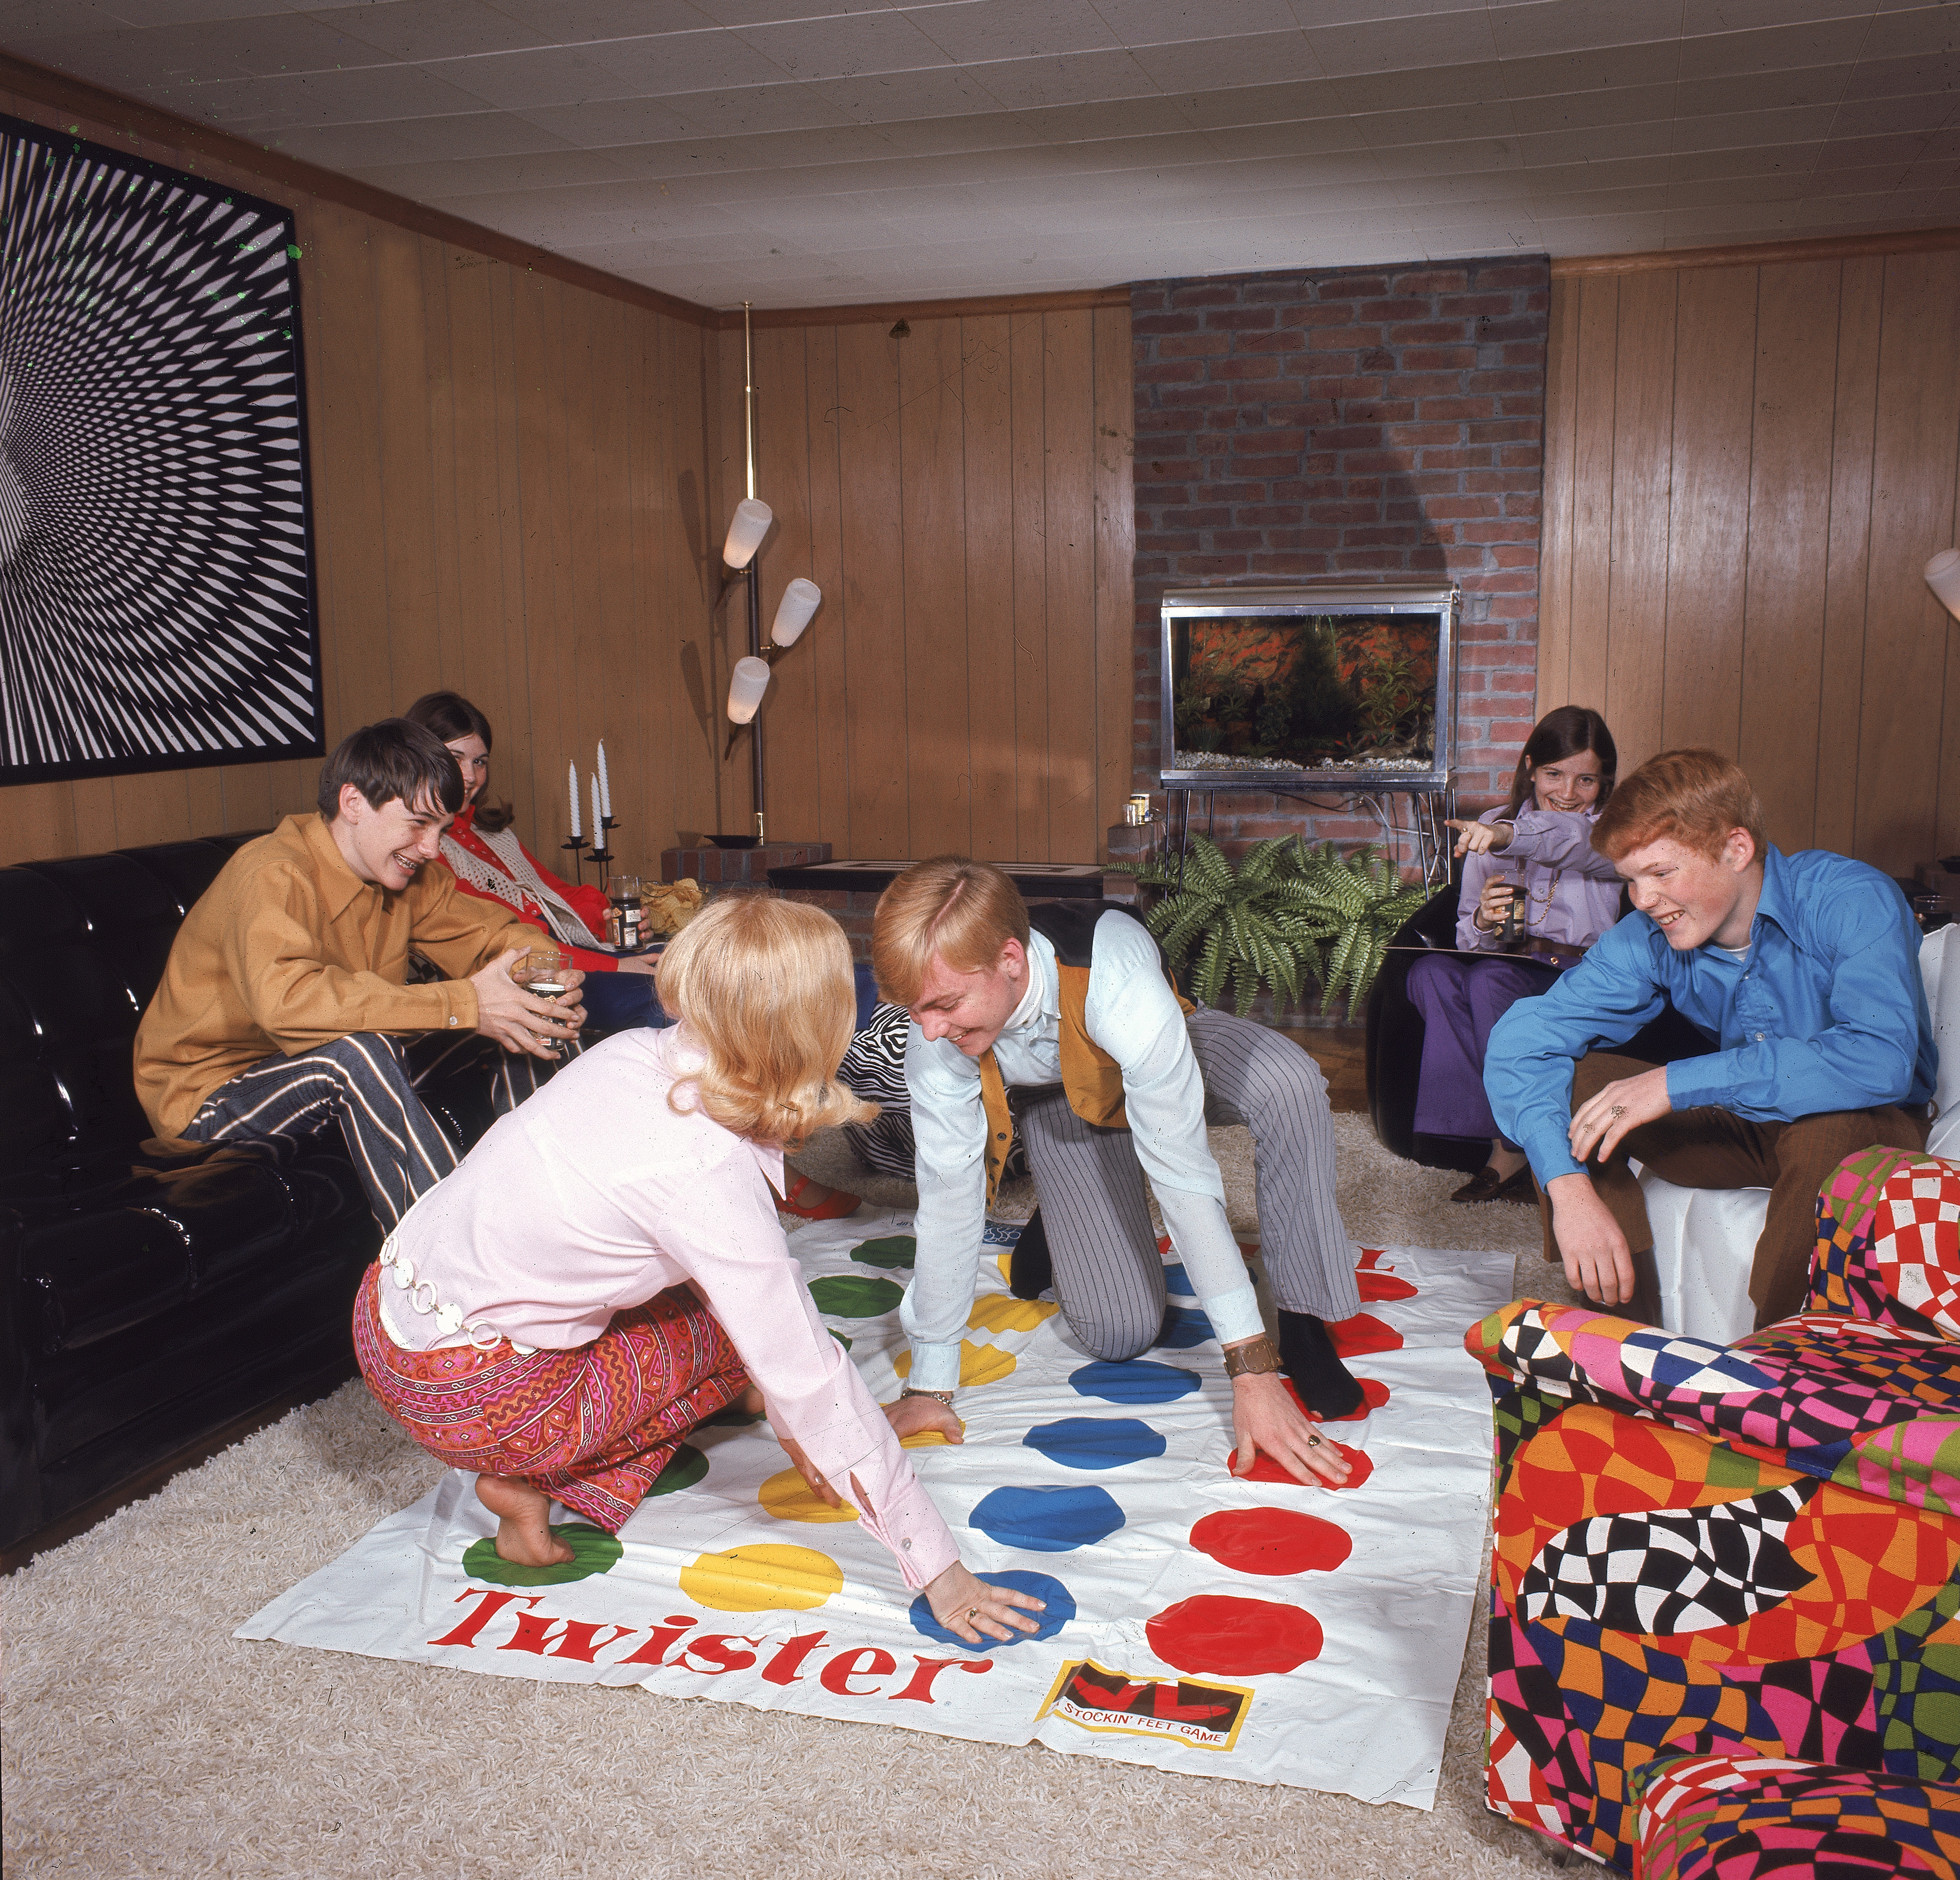 Twister As A Drinking Game